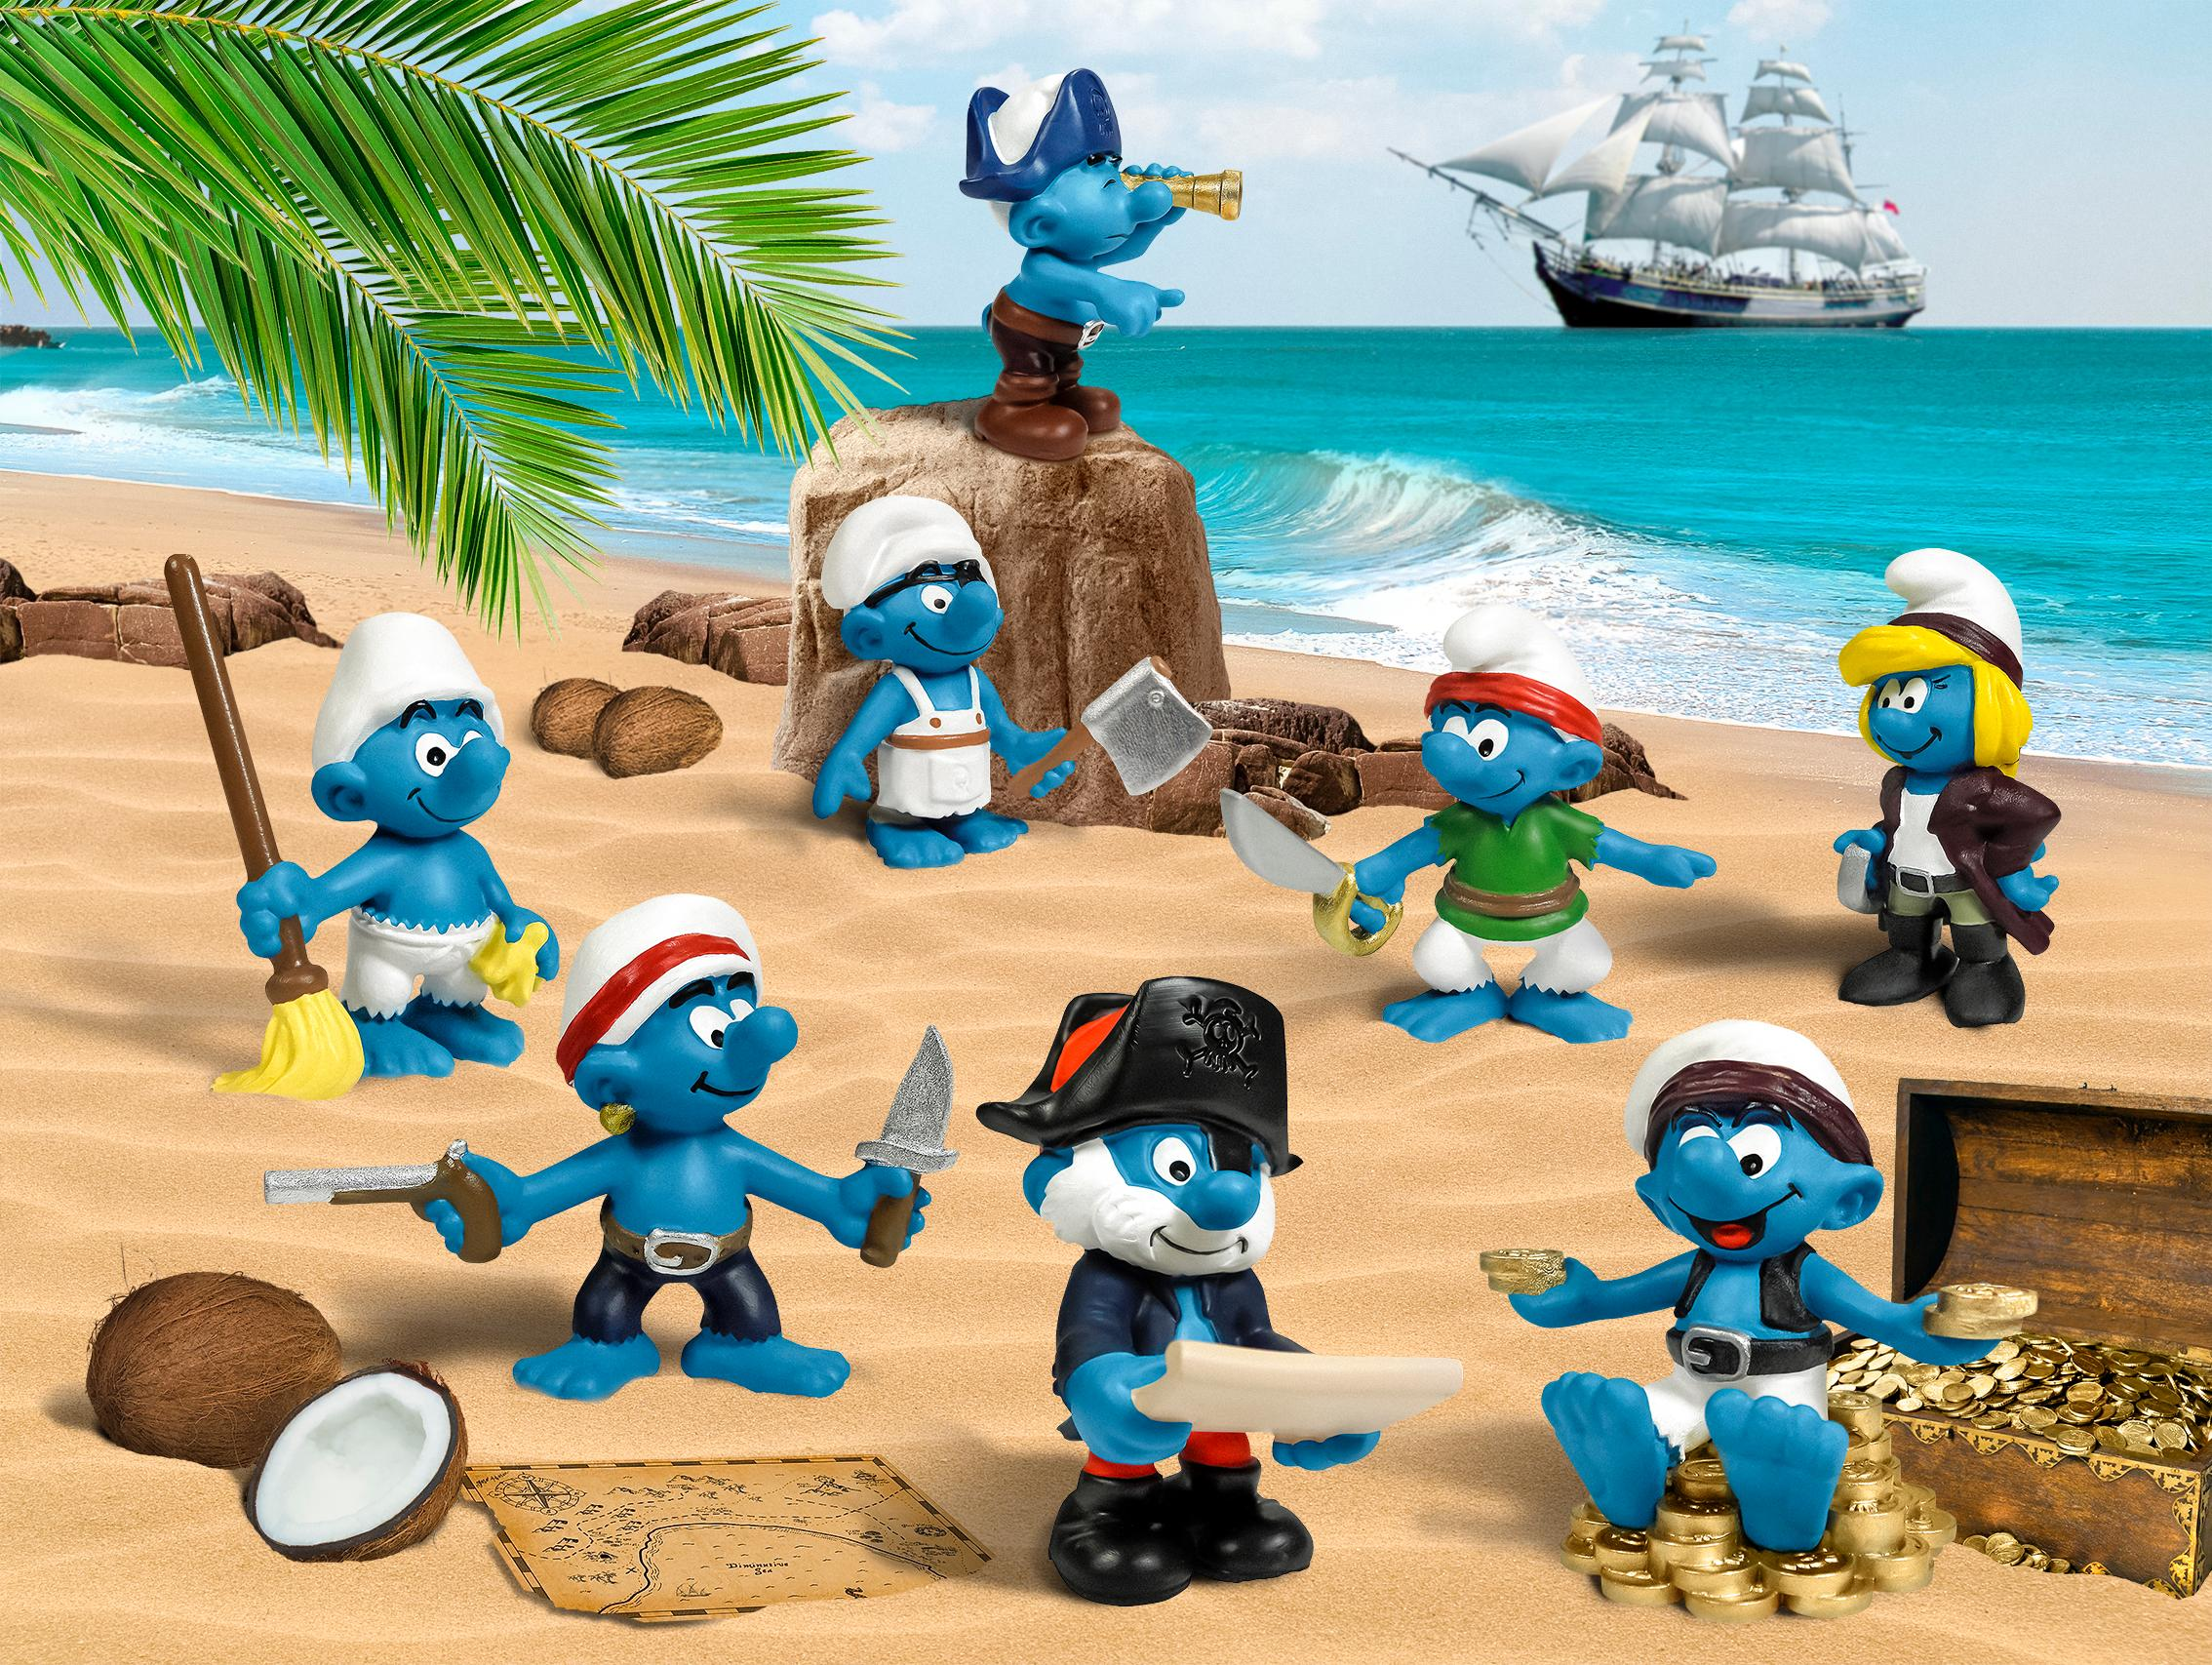 Amazon.com: Schleich Smurfs Large House: Toys & Games